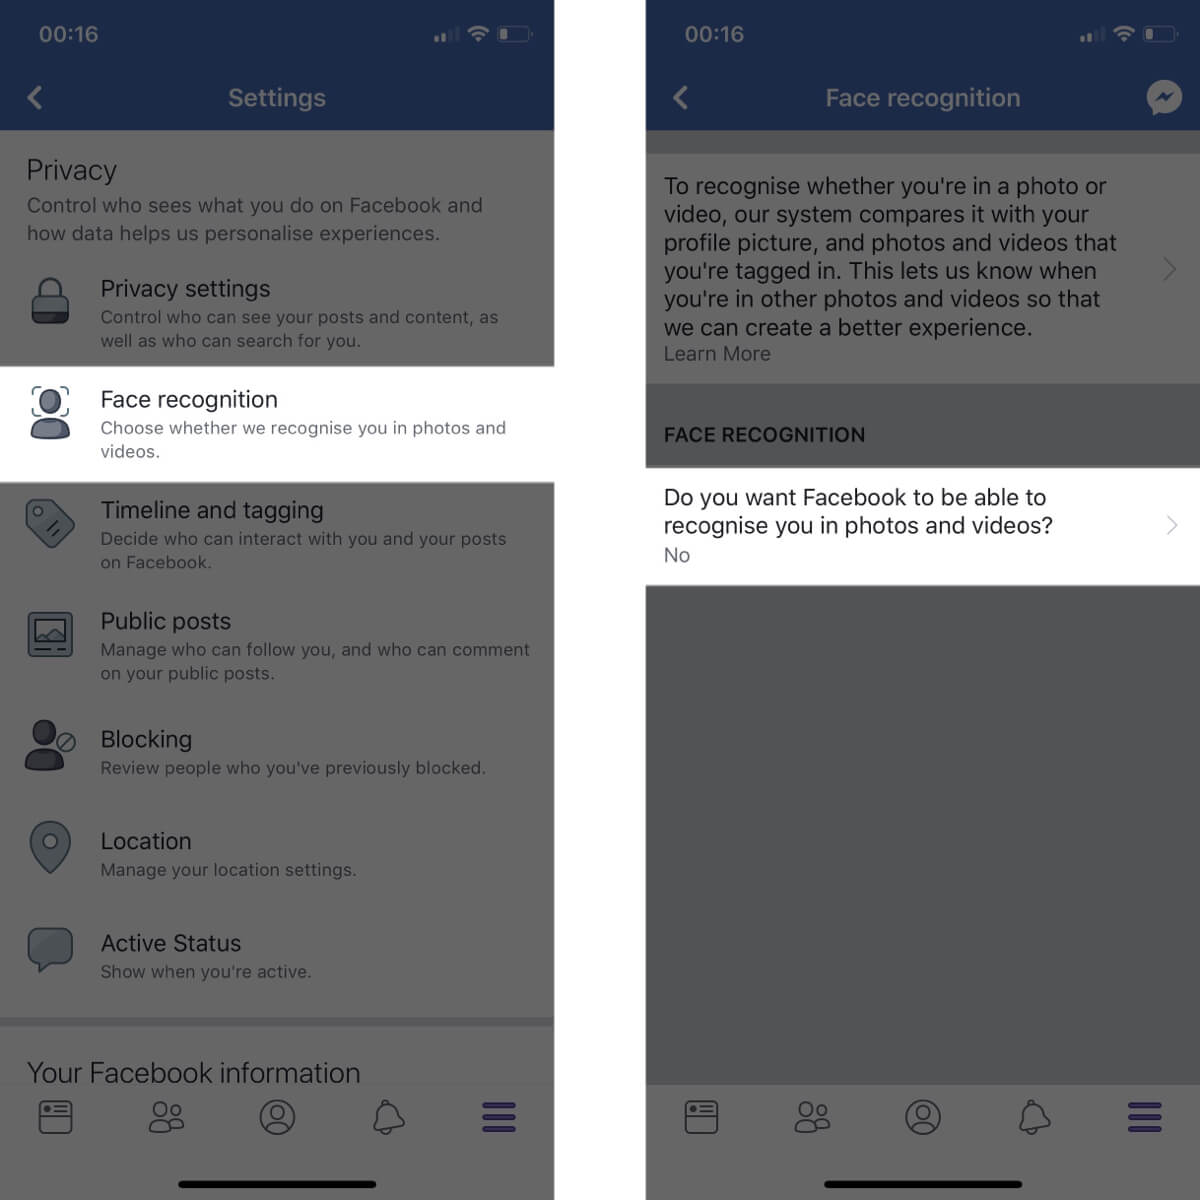 Screenshots showing how to access and change your face recognition settings on Facebook.